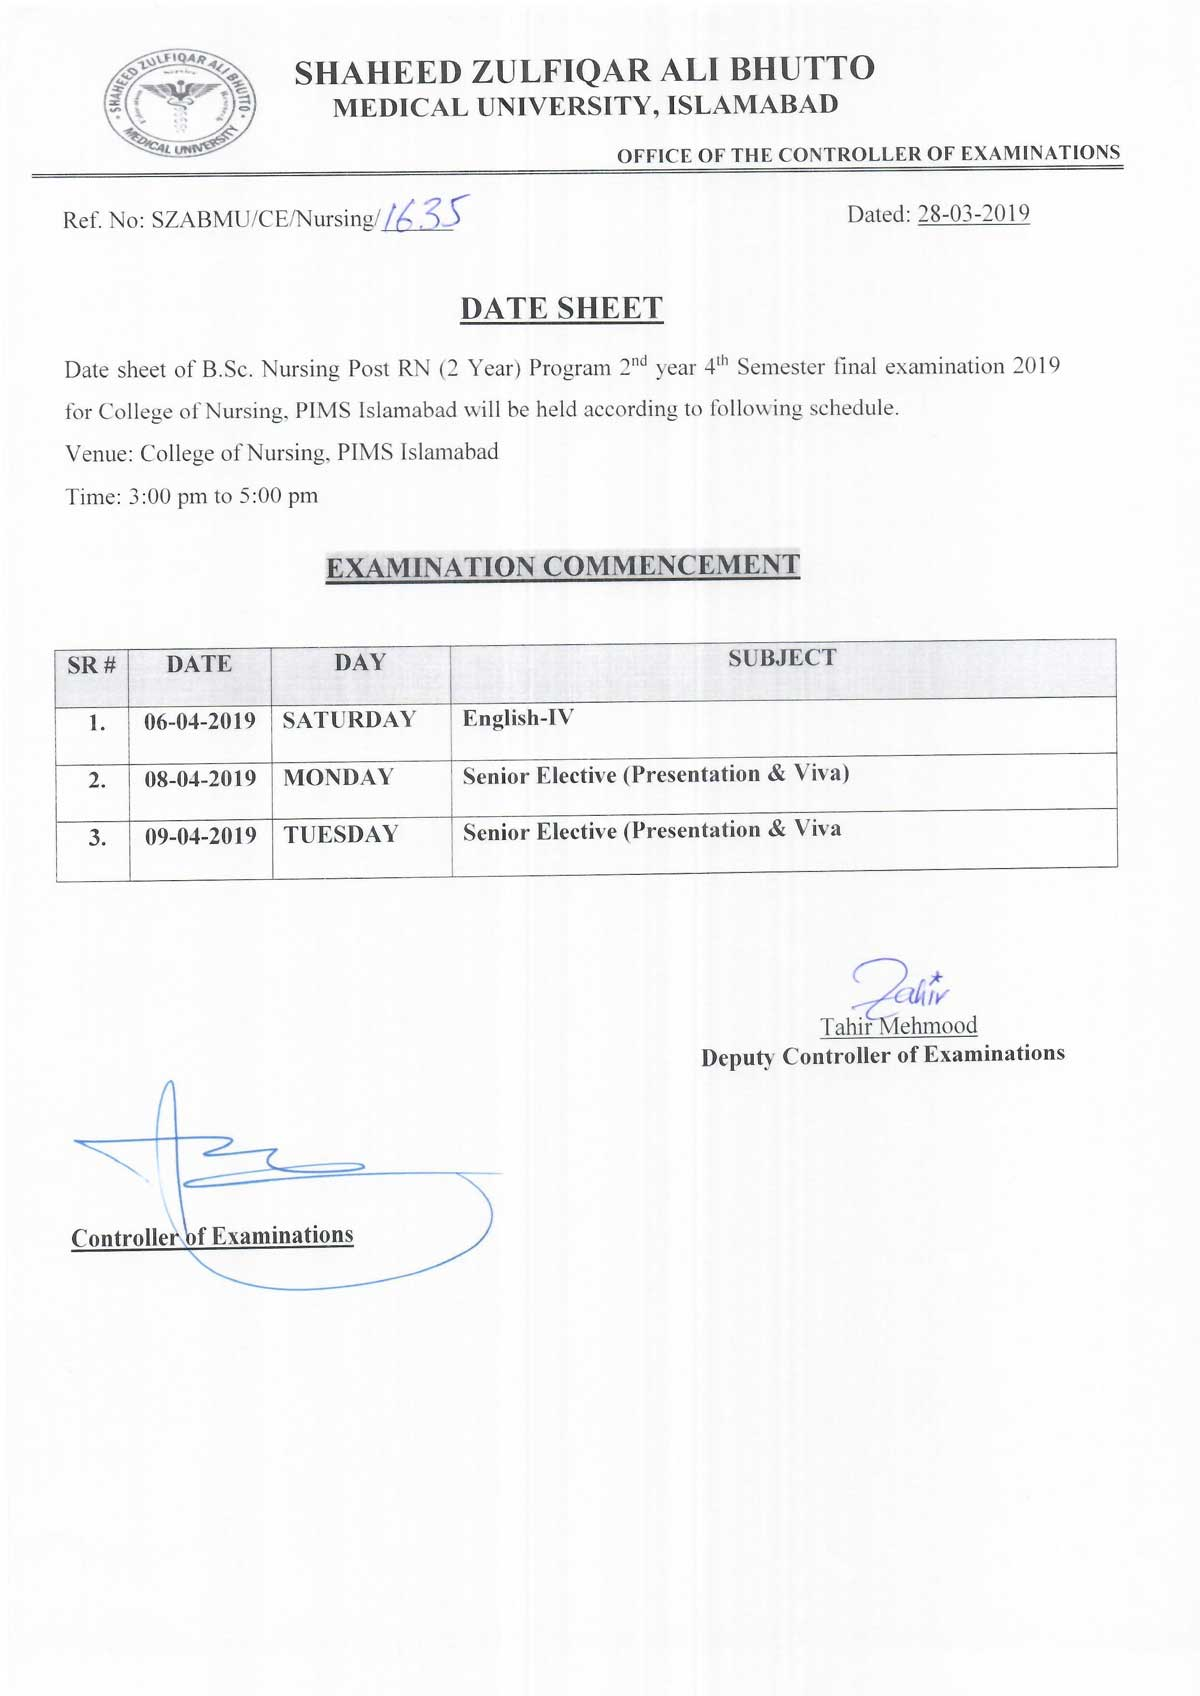 Date sheet of B.Sc Nursing 2nd year 4th Semester Annual Examination 2019